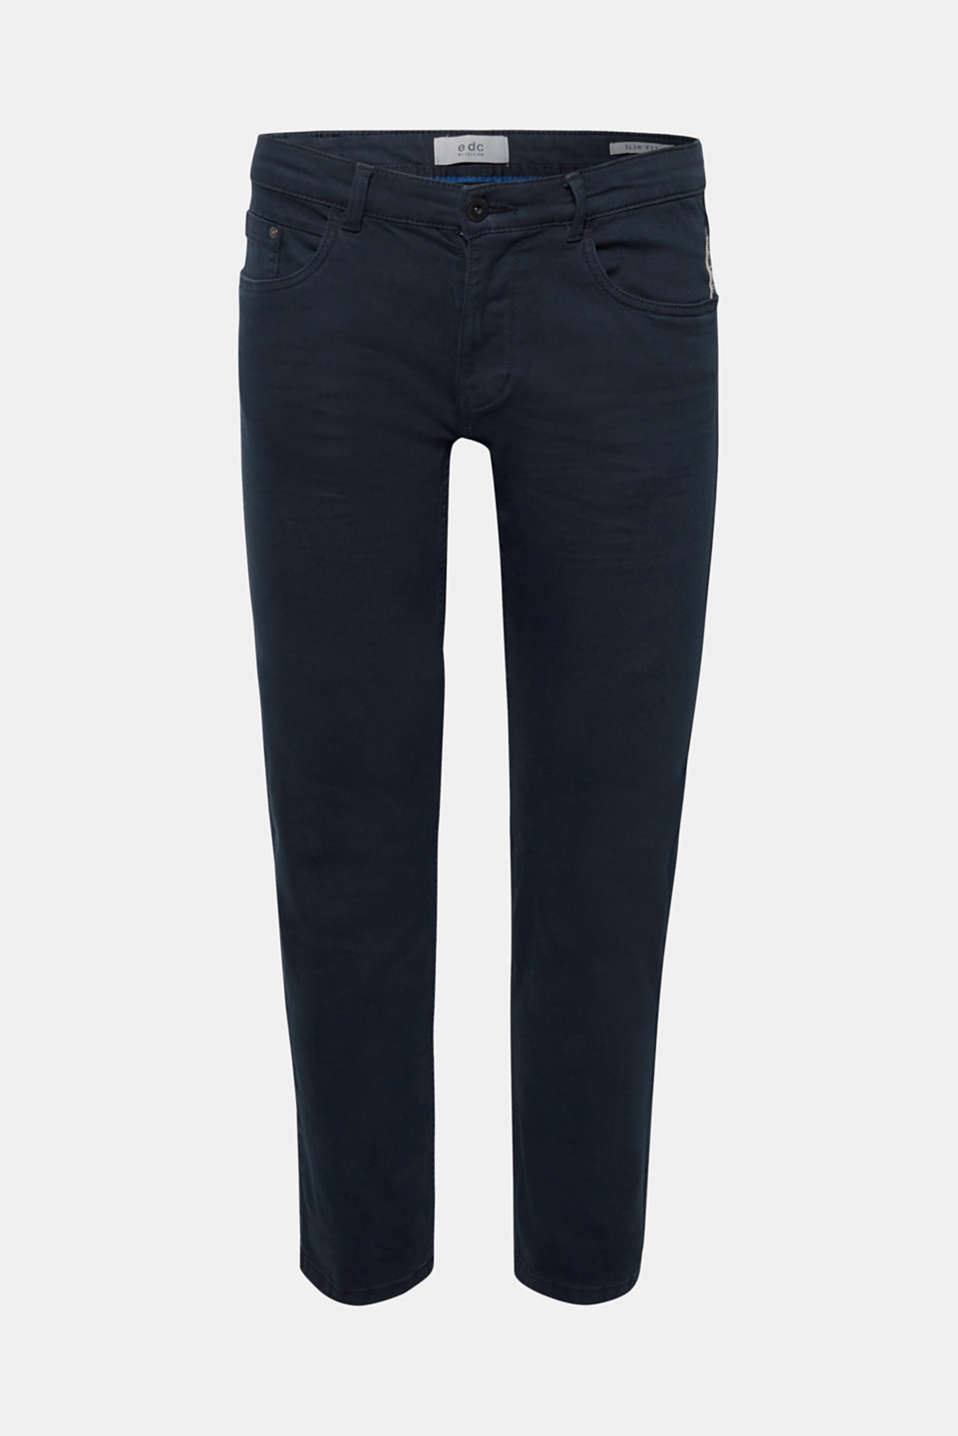 Stretch jeans in coloured denim, NAVY, detail image number 6